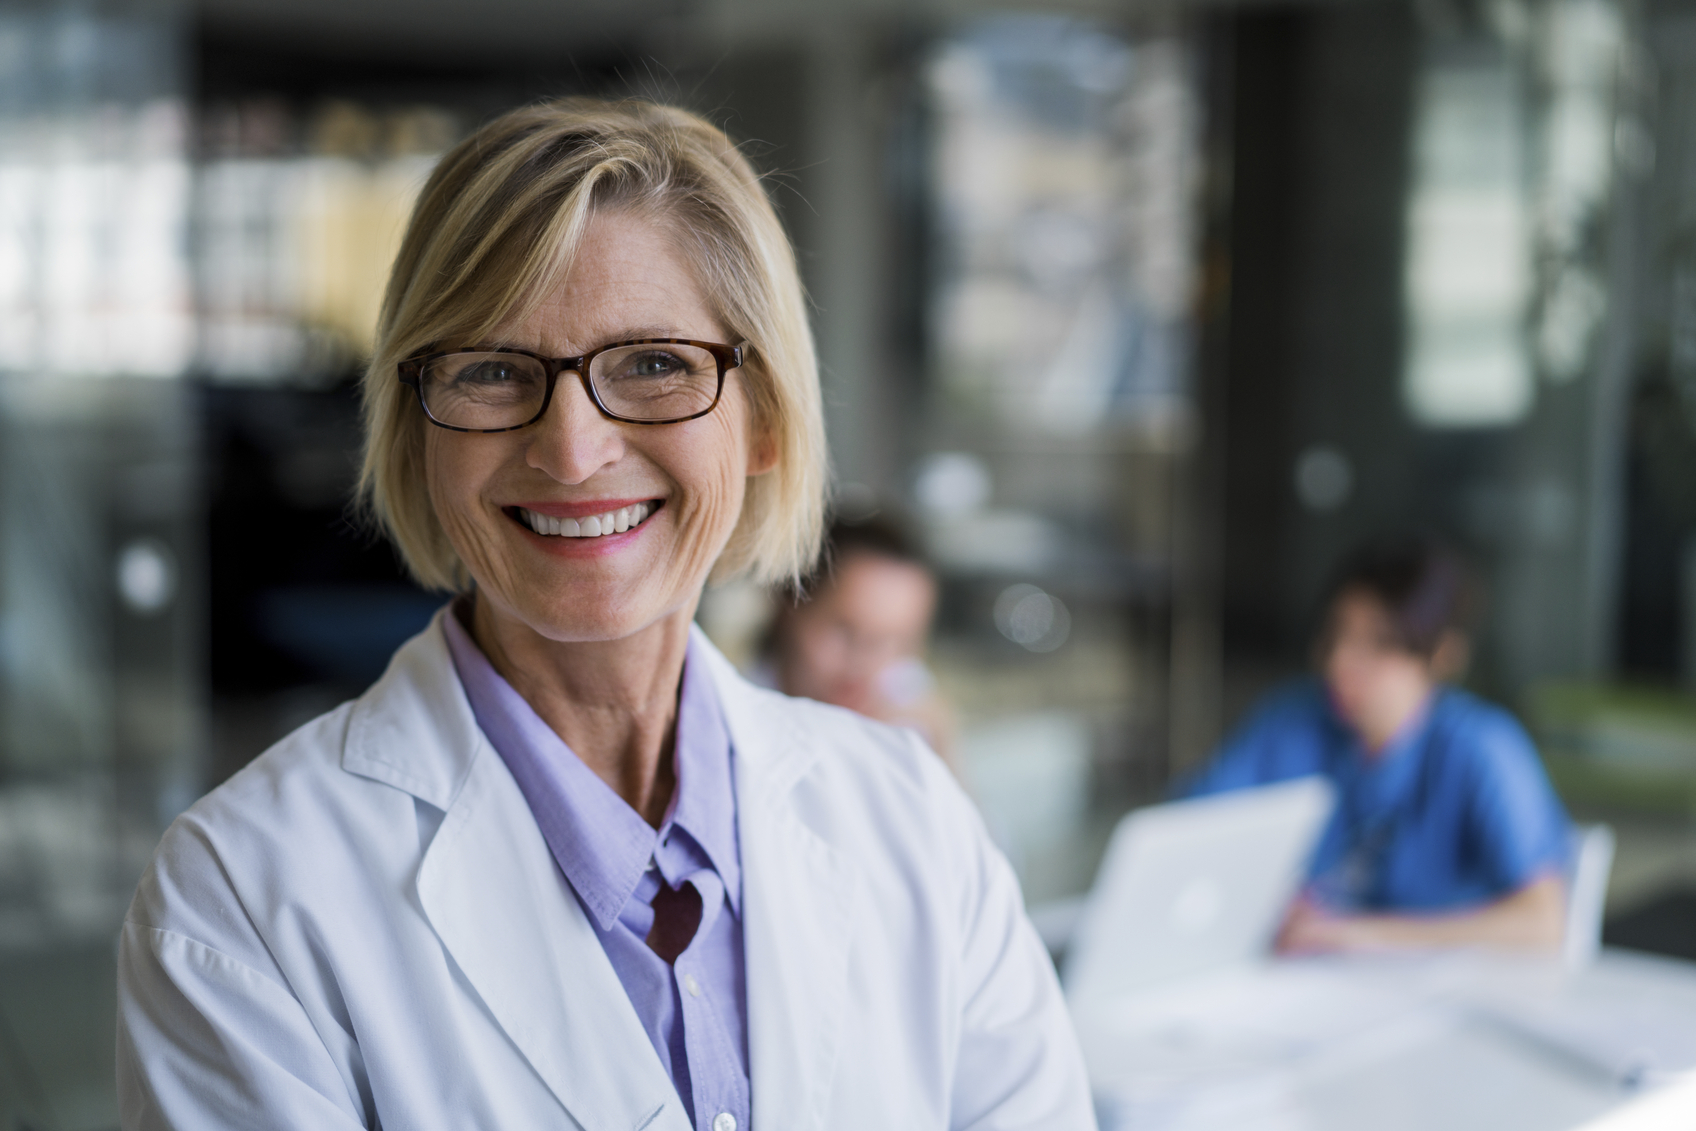 Female Physician Smiling_Age 50